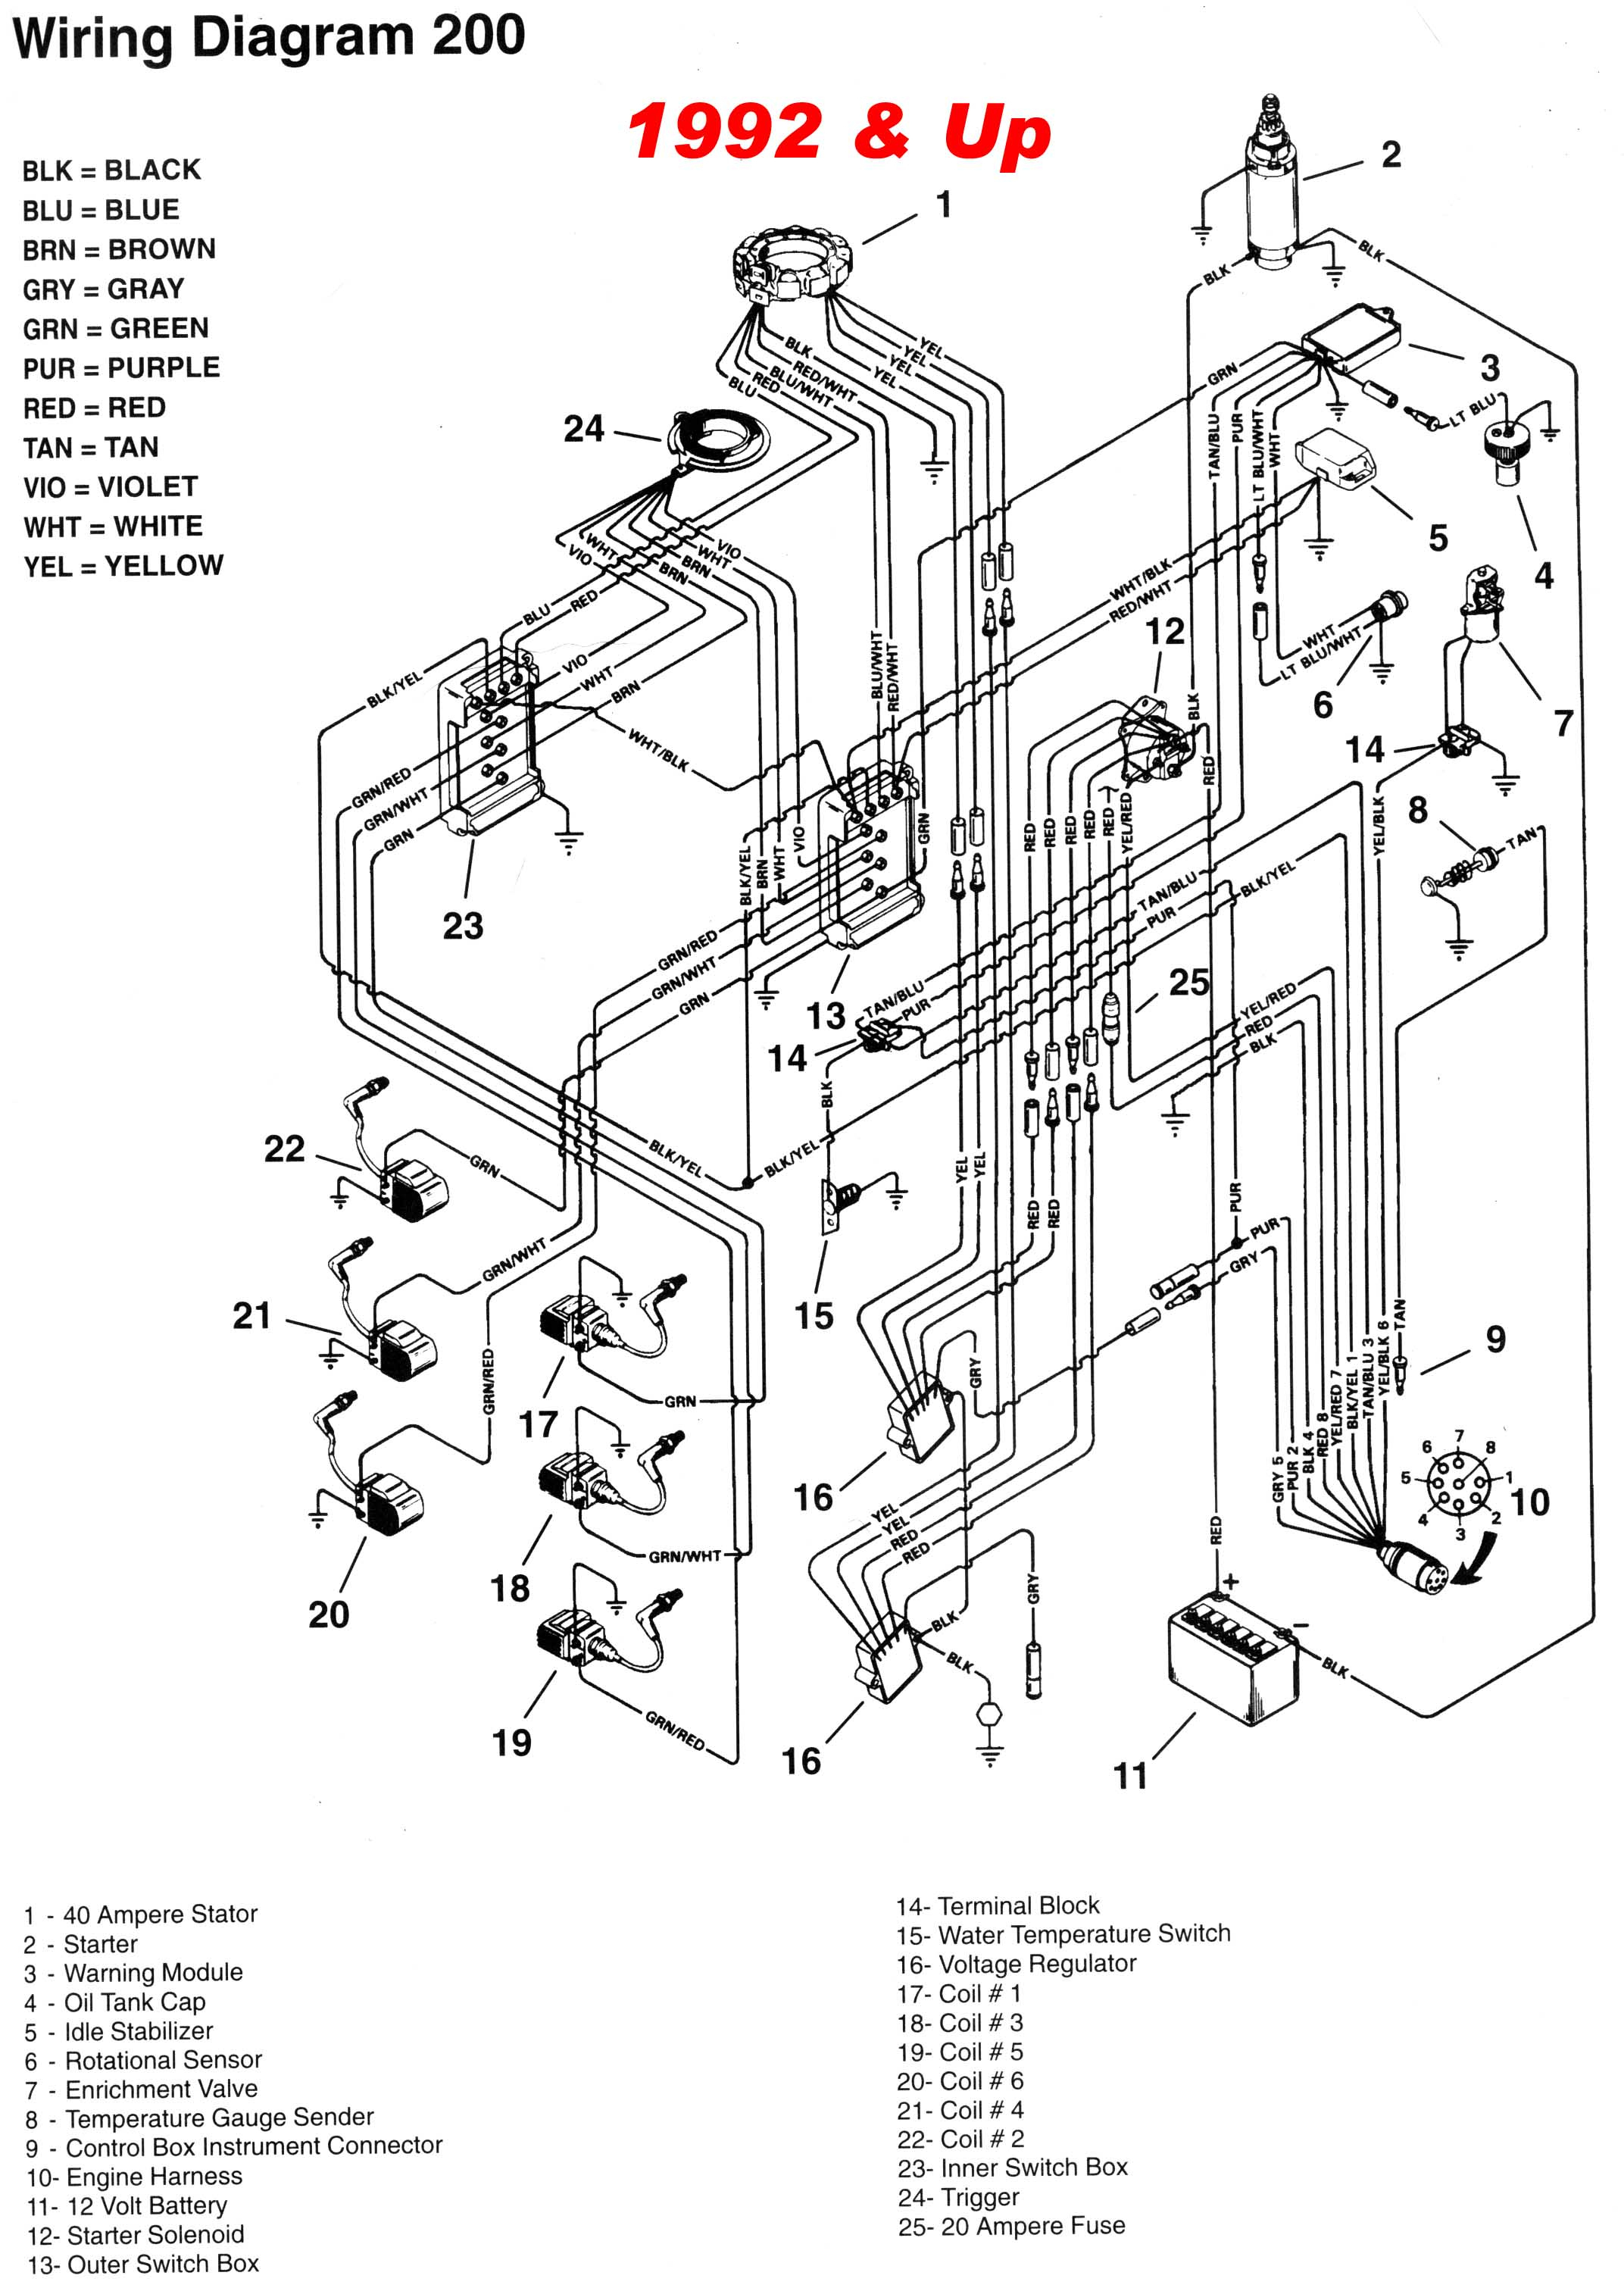 Wiring Diagrams For Leviton Switches